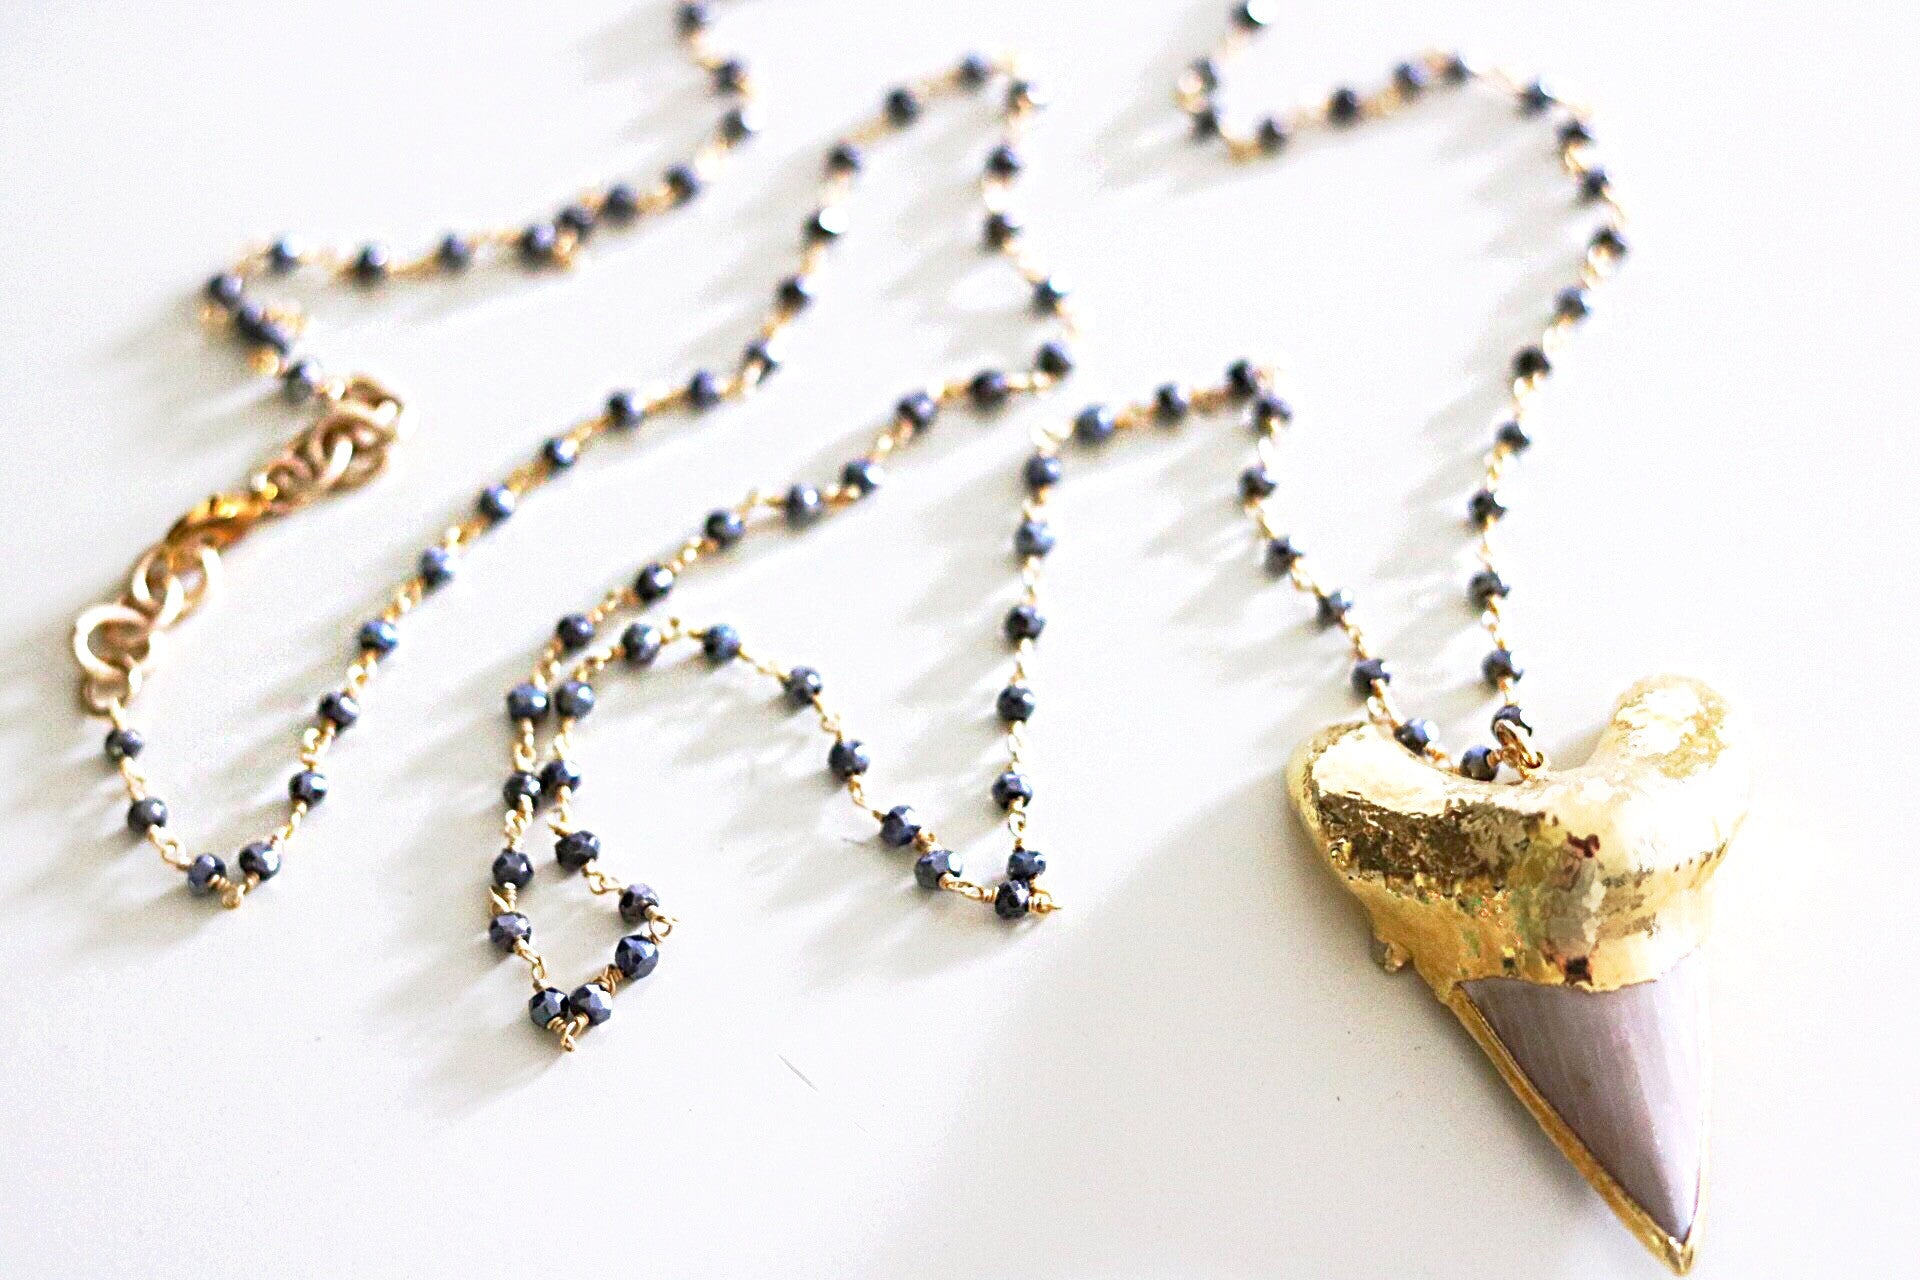 Sharks tooth necklace with 24k Gold-filled Dipped Shark's Tooth  Featured on Petite Pyrite and Wire-wrap Chain.